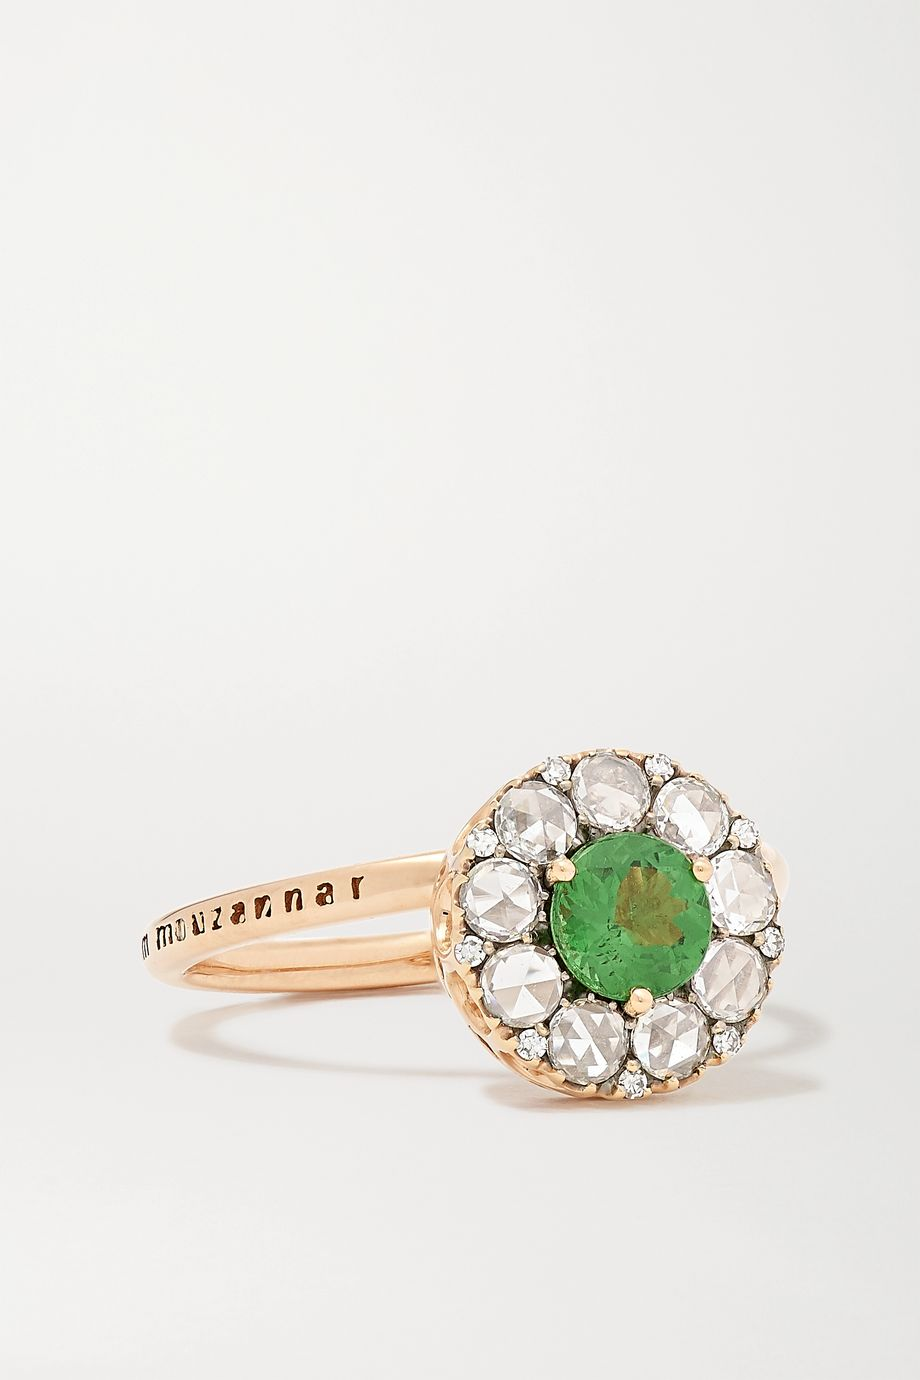 Selim Mouzannar Bague en or rose 18 carats, diamants et tsavorite